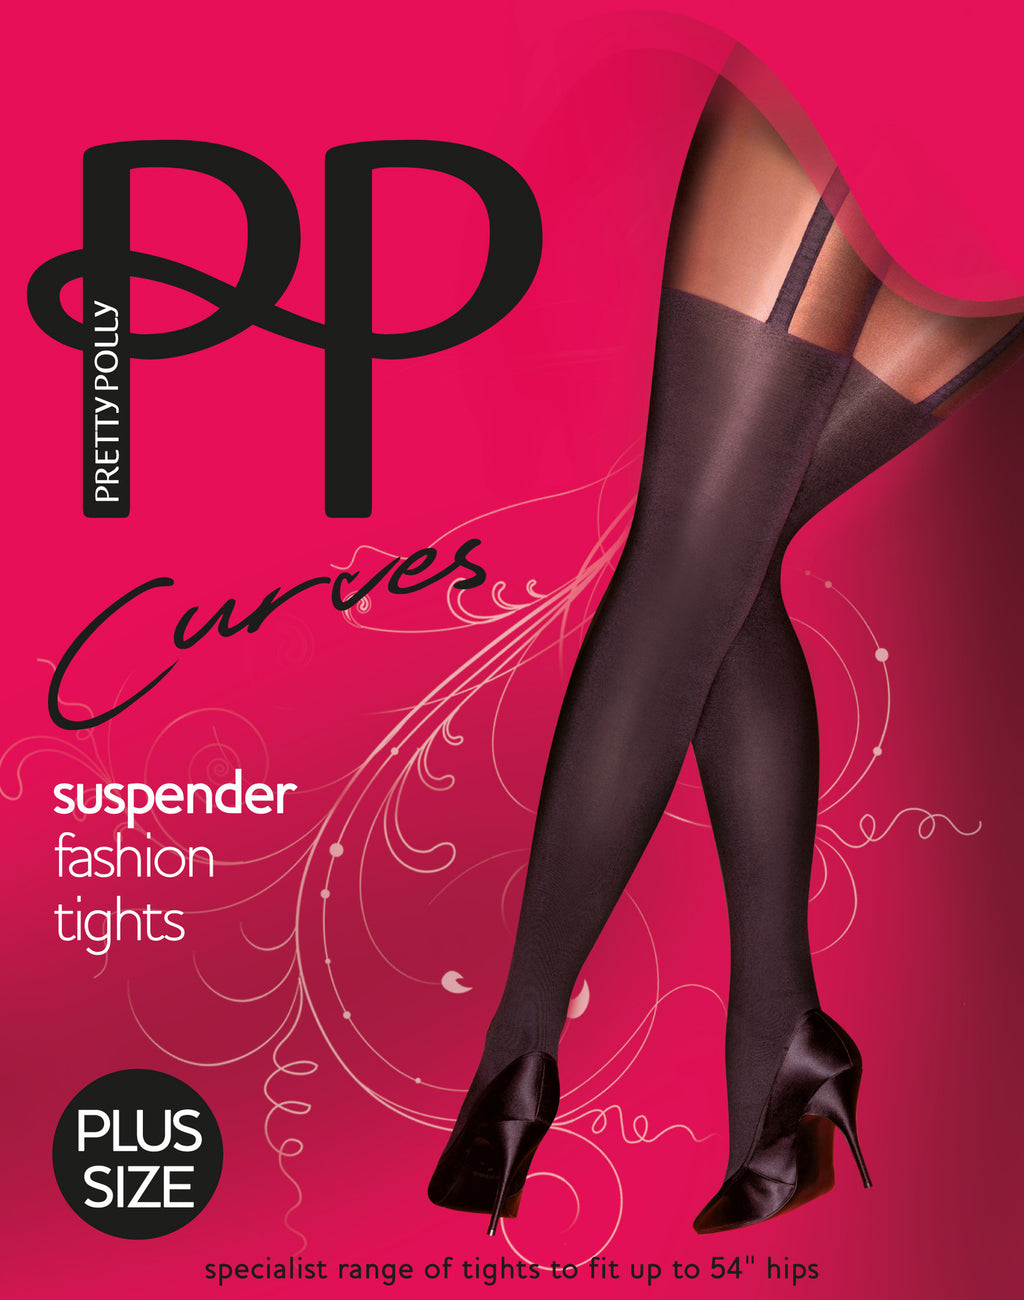 Pretty Polly Curves Suspender Fashion Tights are fake suspender style hose and are tights or pantyhose.